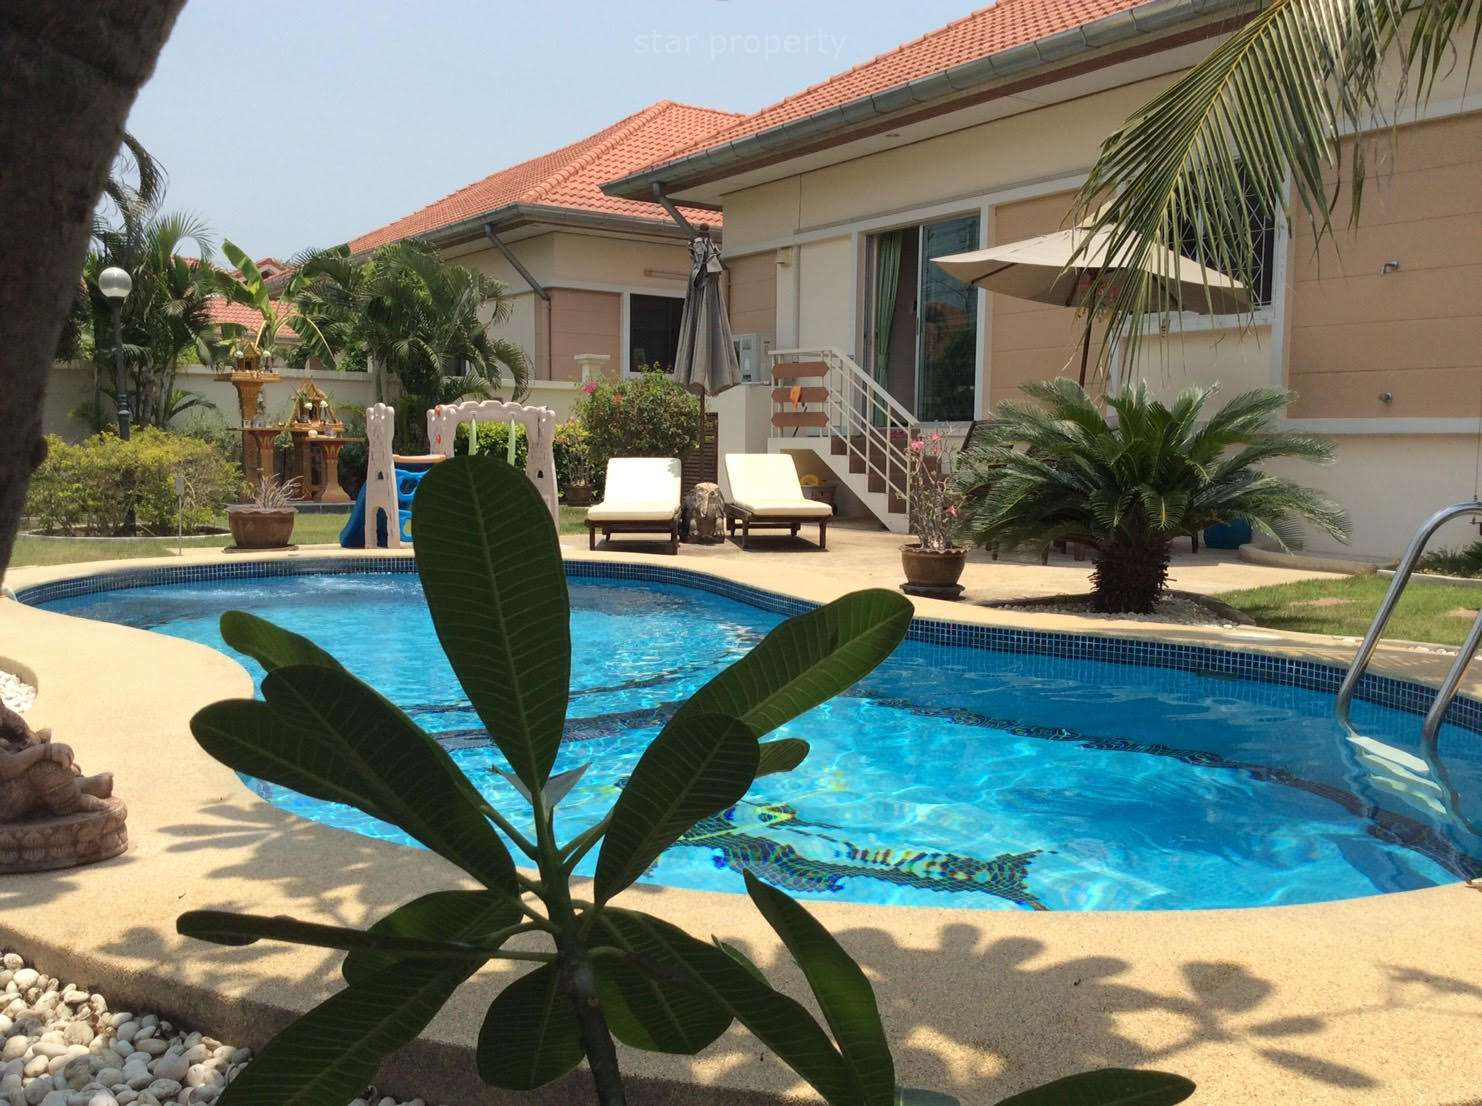 Pool Villa for Rent Hua Hin Soi 70 at Baan Thai Village